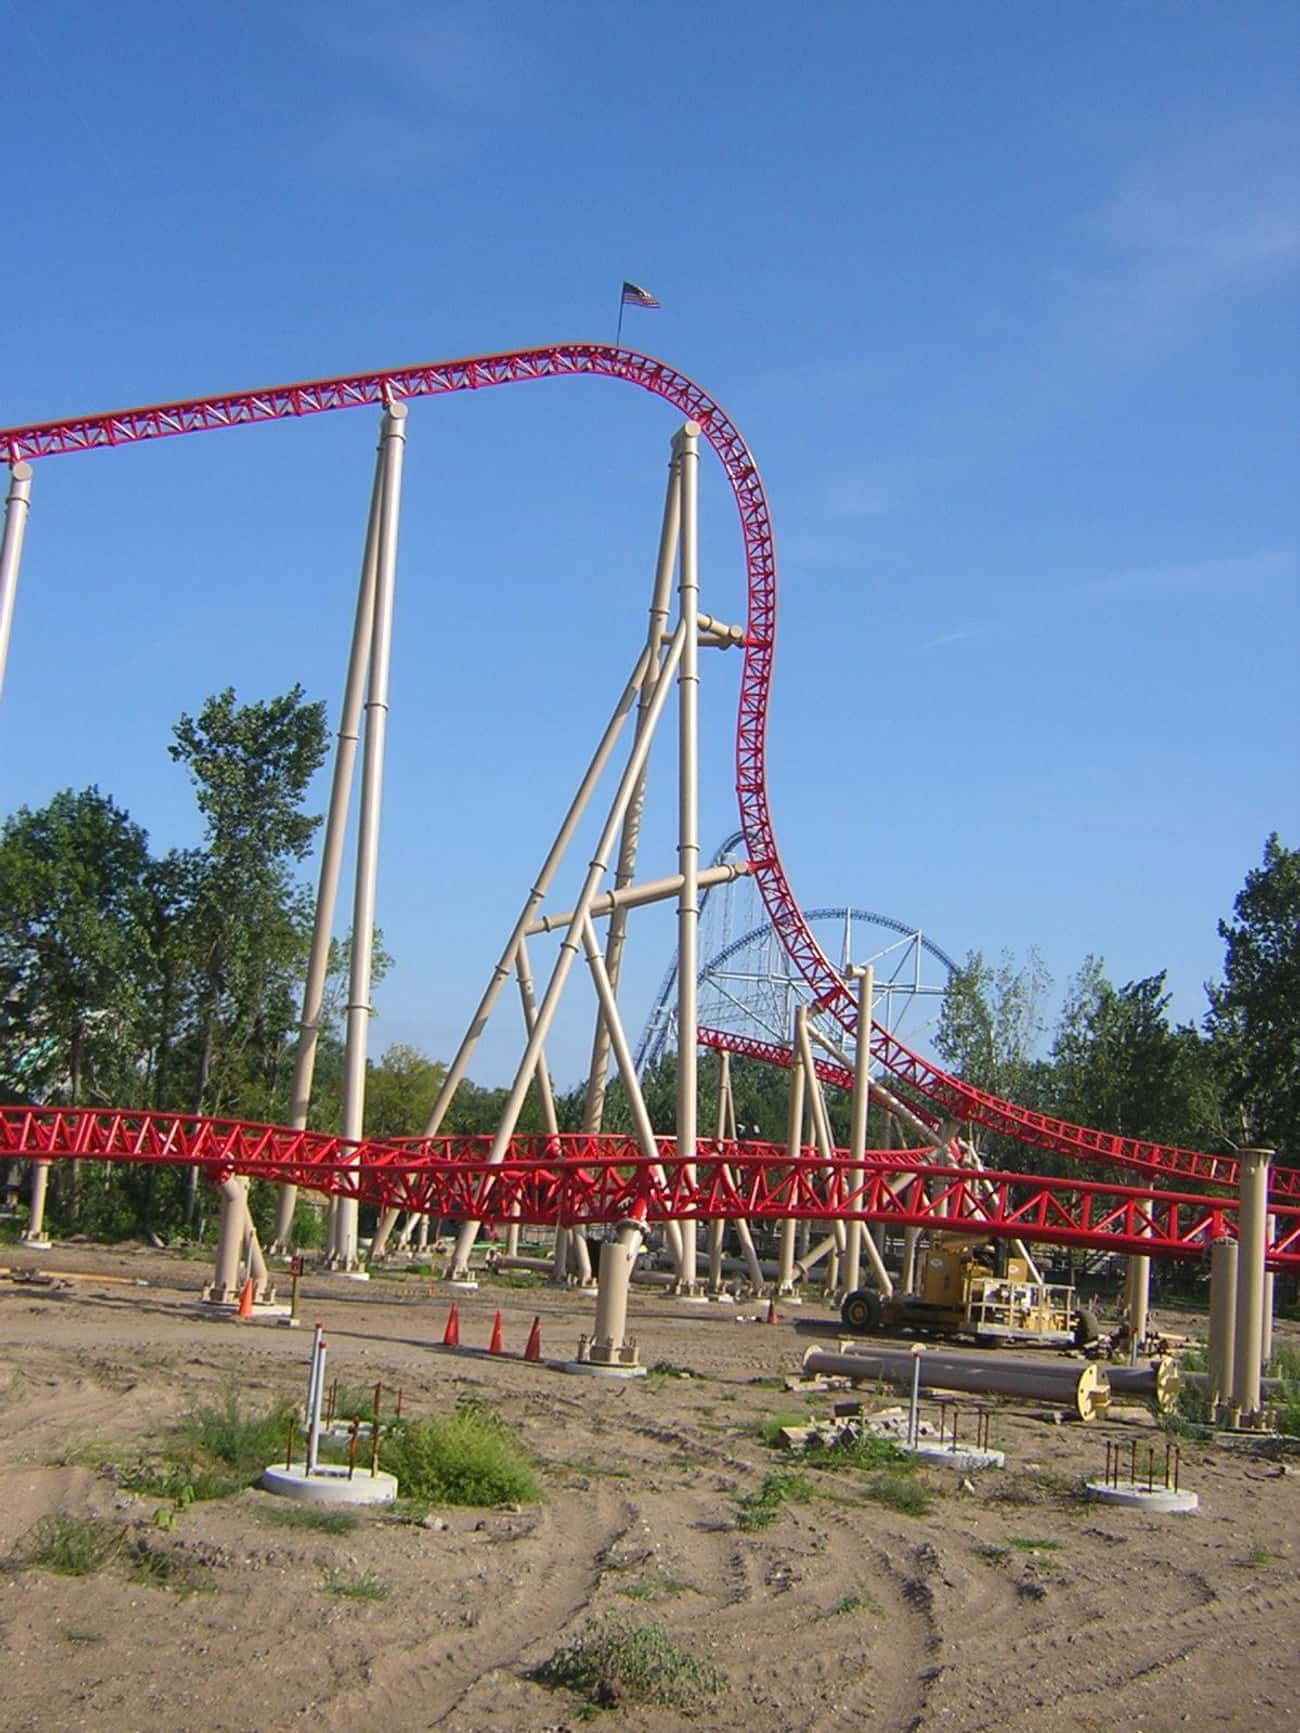 Maverick is listed (or ranked) 2 on the list The Best Roller Coasters in the World